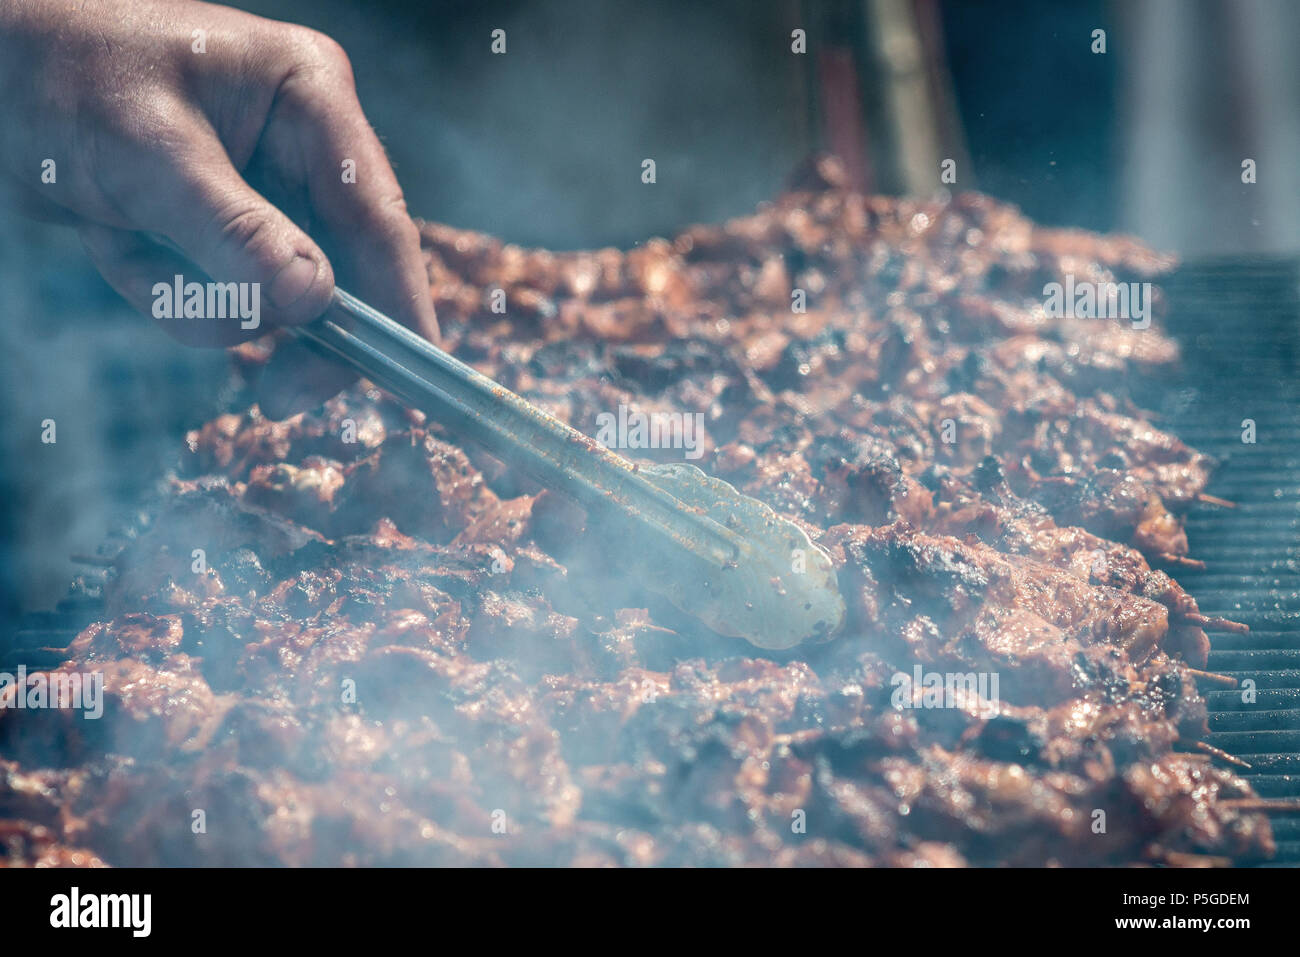 Meat on skewers fried on the grill in the open air, visible hands of the cook. Stock Photo